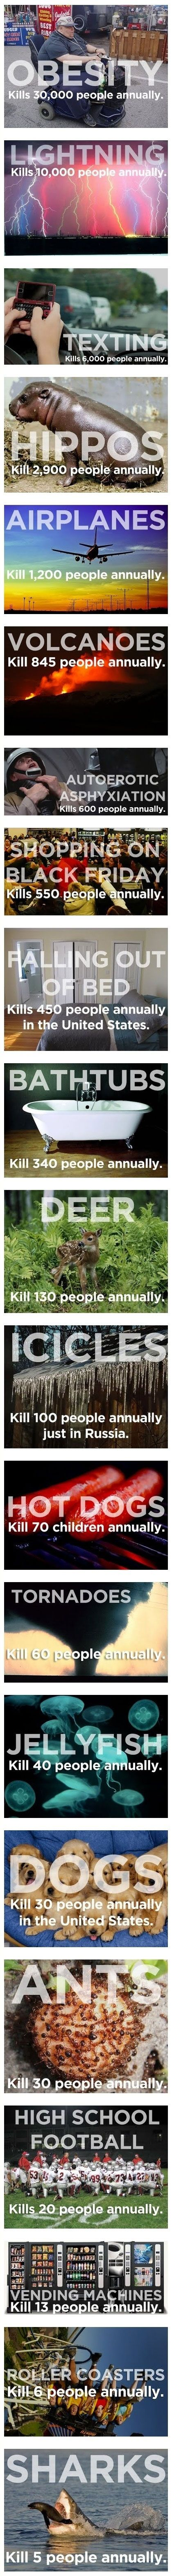 20 things that kill more people than sharks